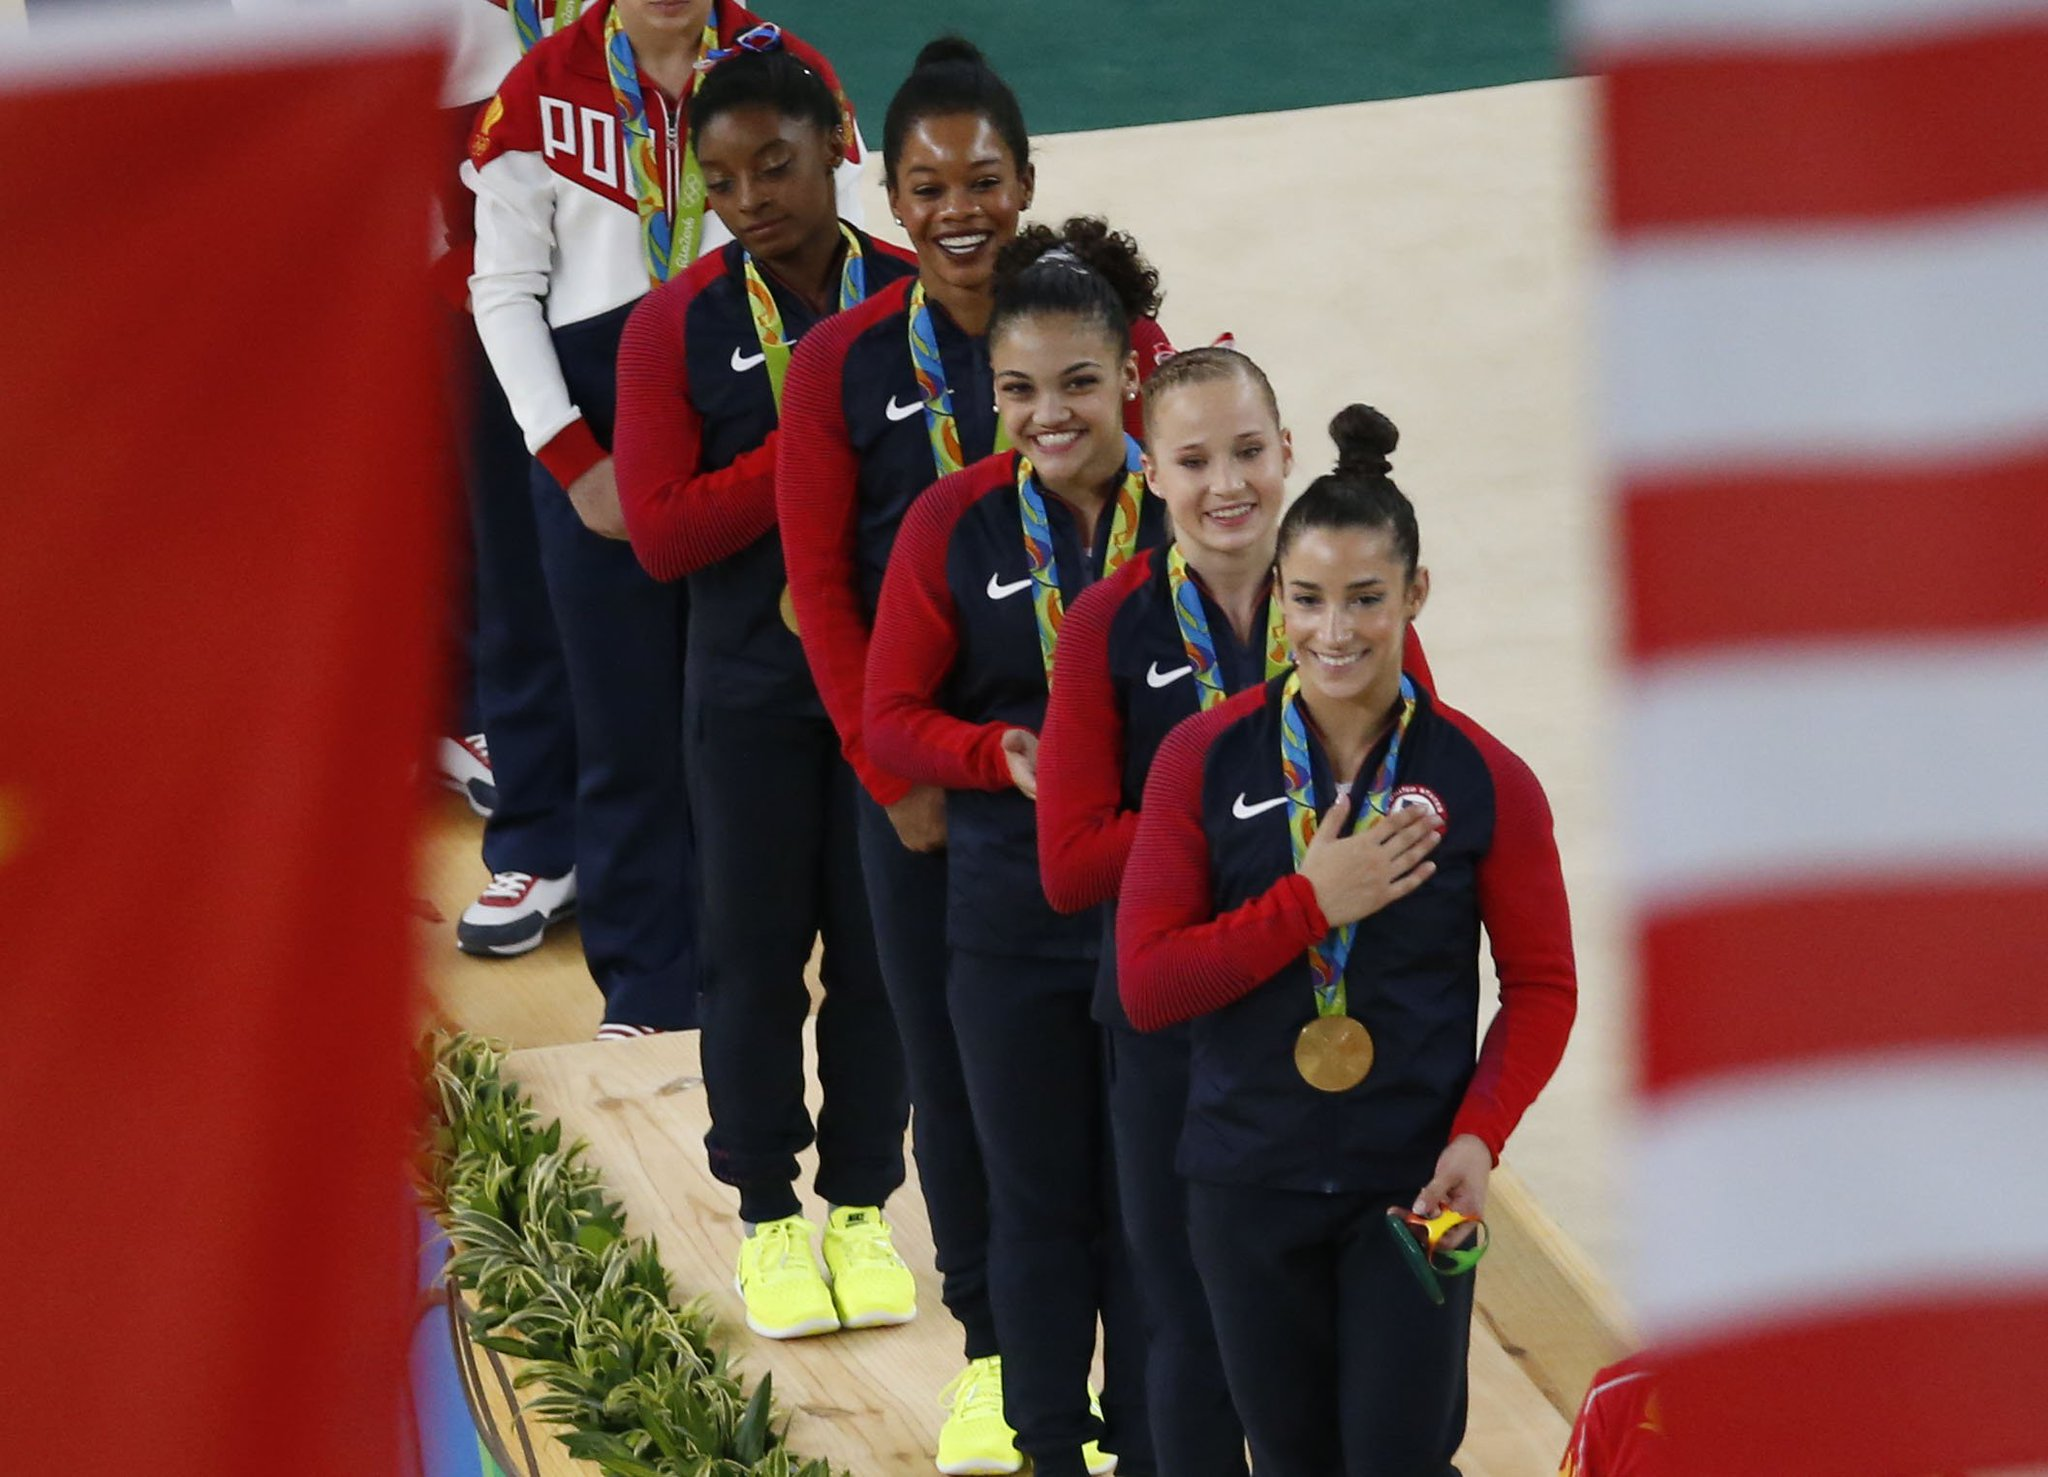 All. Gold. Everything. #FinalFive  ���������� https://t.co/mArCR7VqXq